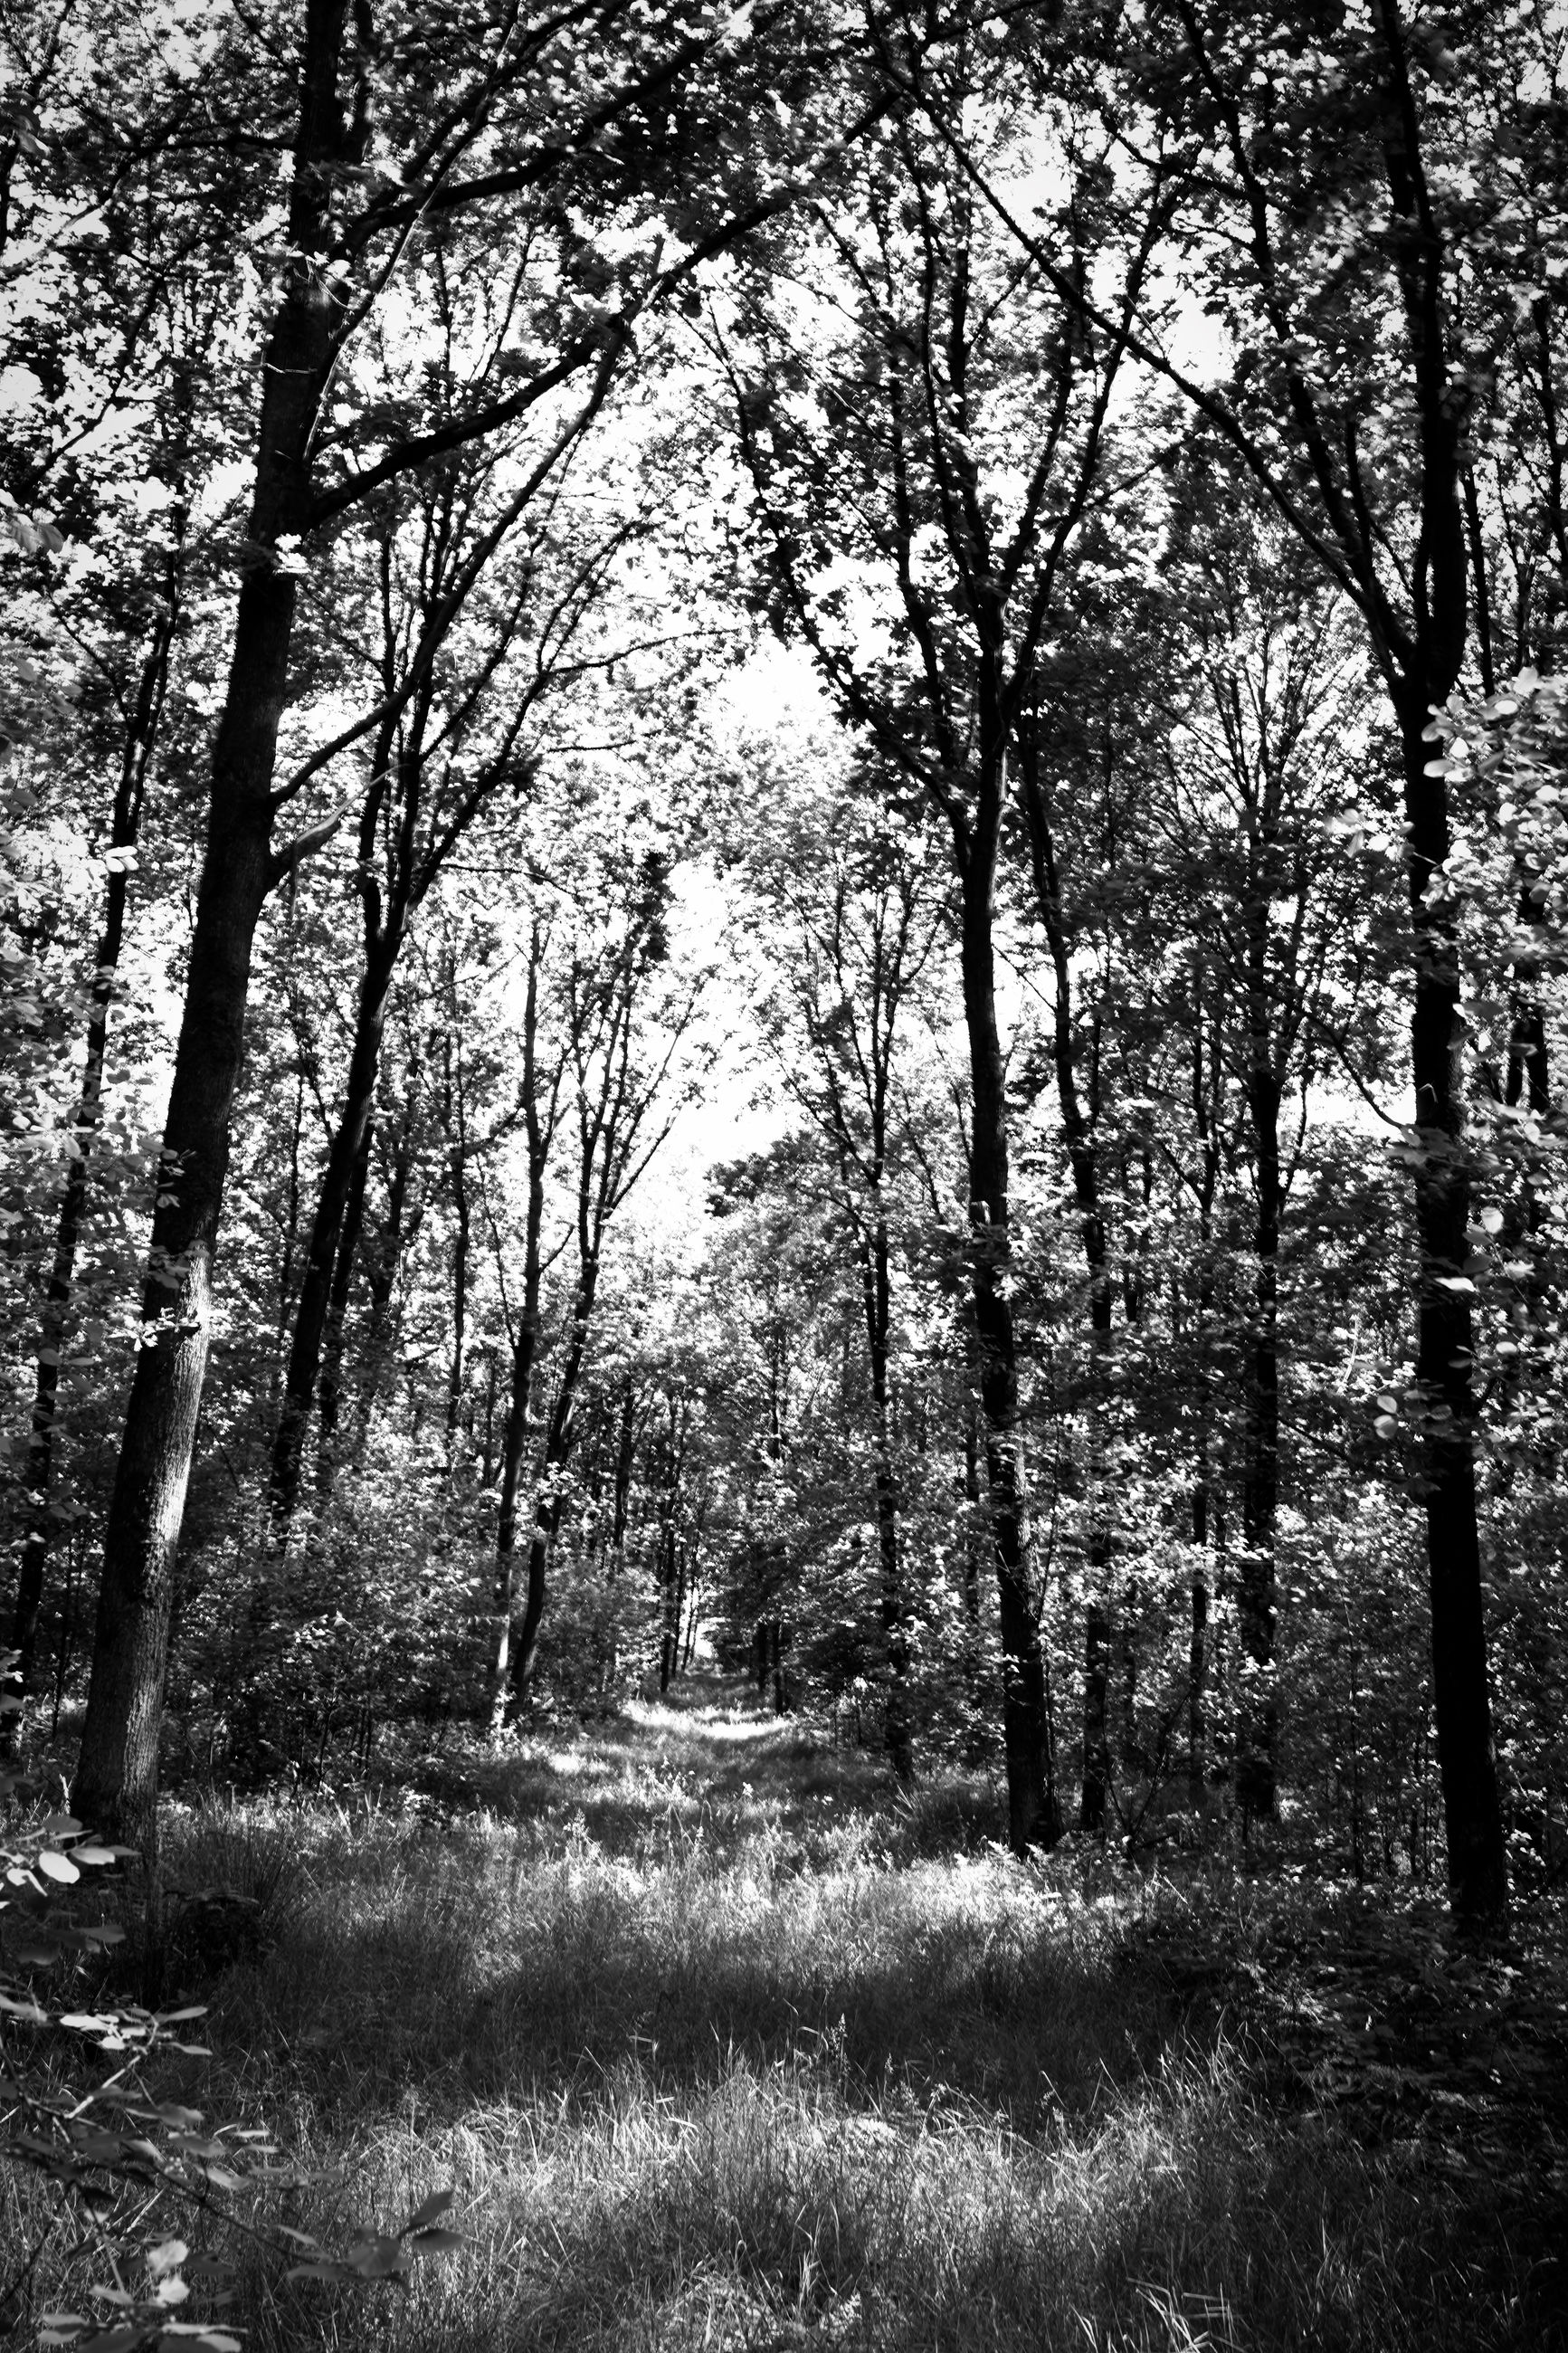 tree, plant, land, black and white, tranquility, forest, nature, beauty in nature, tranquil scene, growth, monochrome photography, no people, natural environment, monochrome, day, non-urban scene, scenics - nature, tree trunk, woodland, trunk, landscape, environment, outdoors, branch, sunlight, the way forward, leaf, sky, idyllic, field